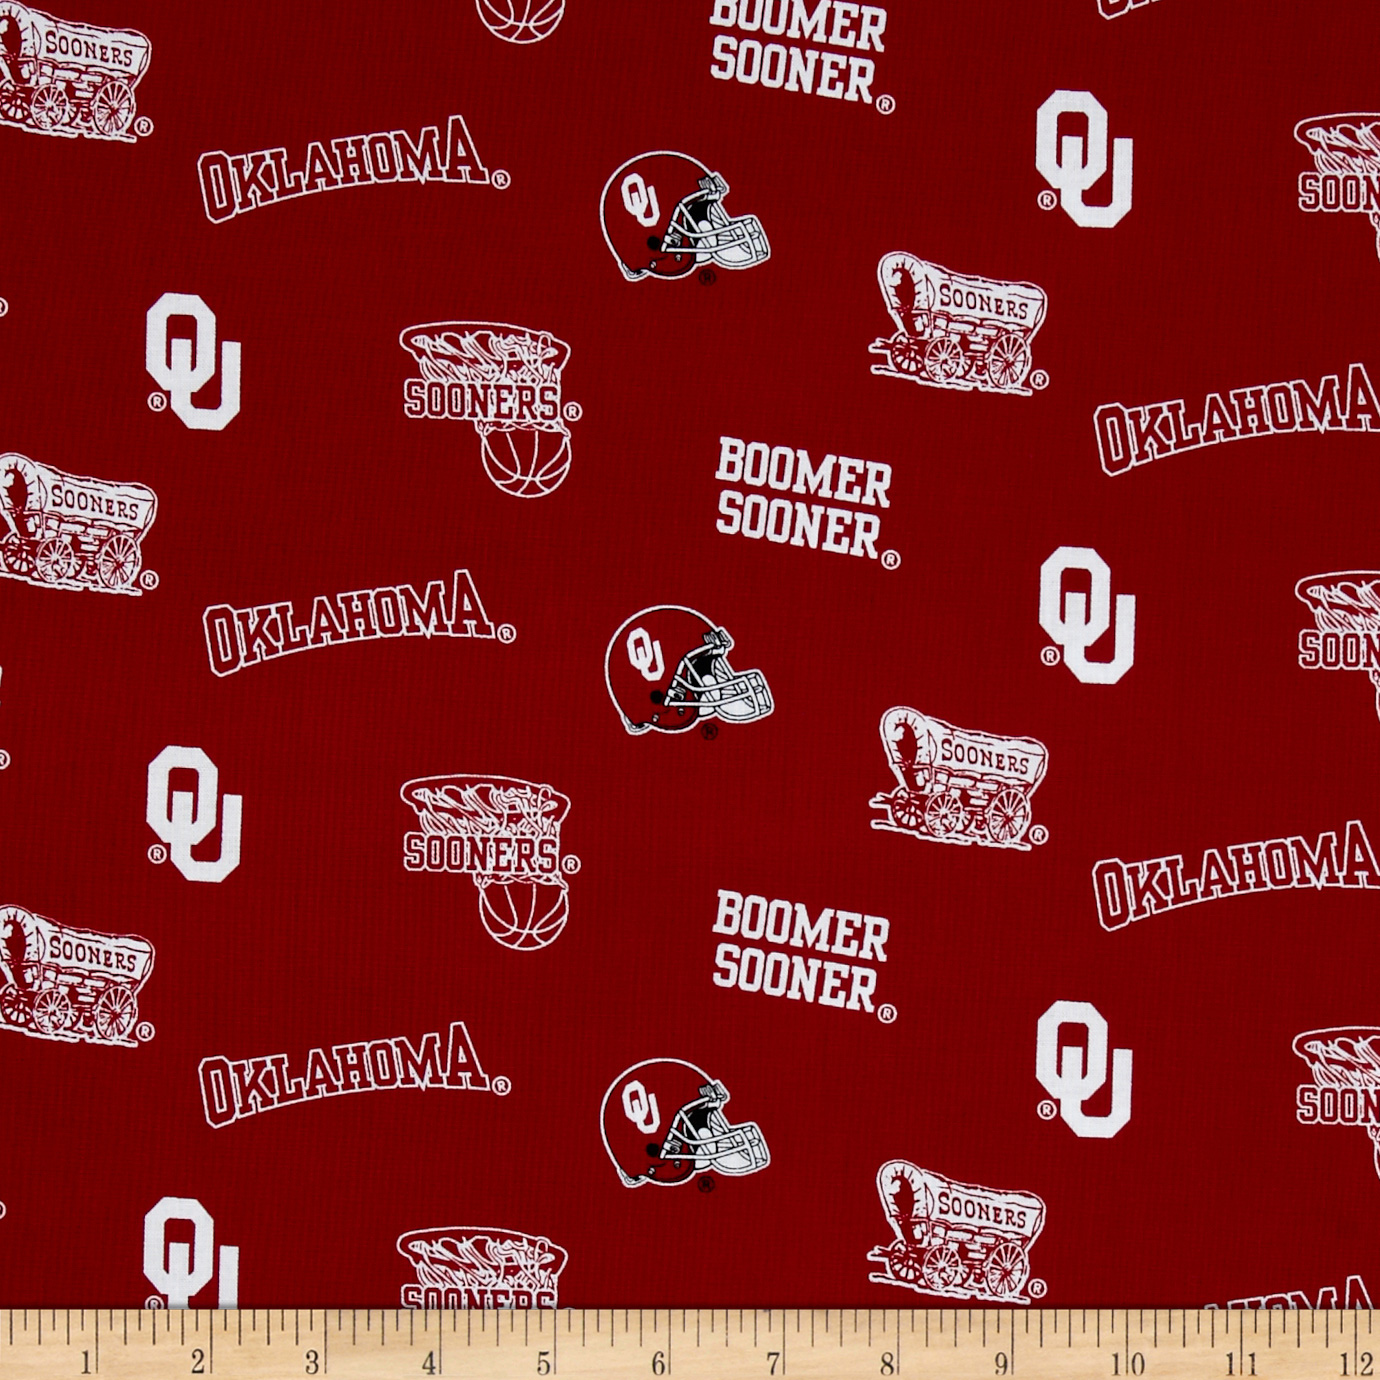 Collegiate Cotton Broadcloth University of Oklahoma Fabric